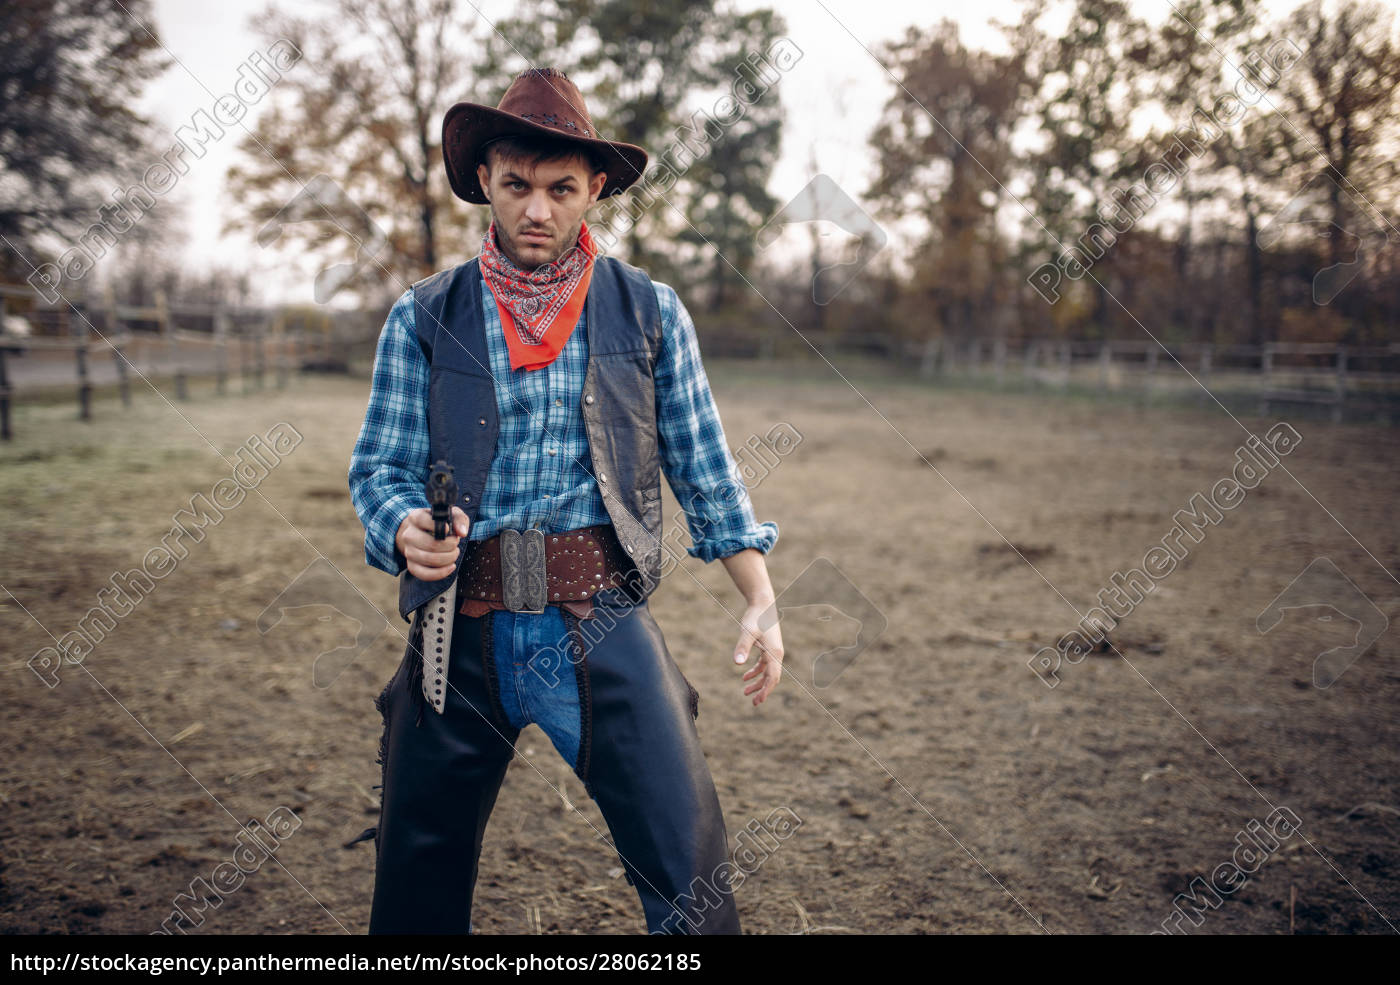 cowboy, with, revolver, makes, quick, shot, - 28062185